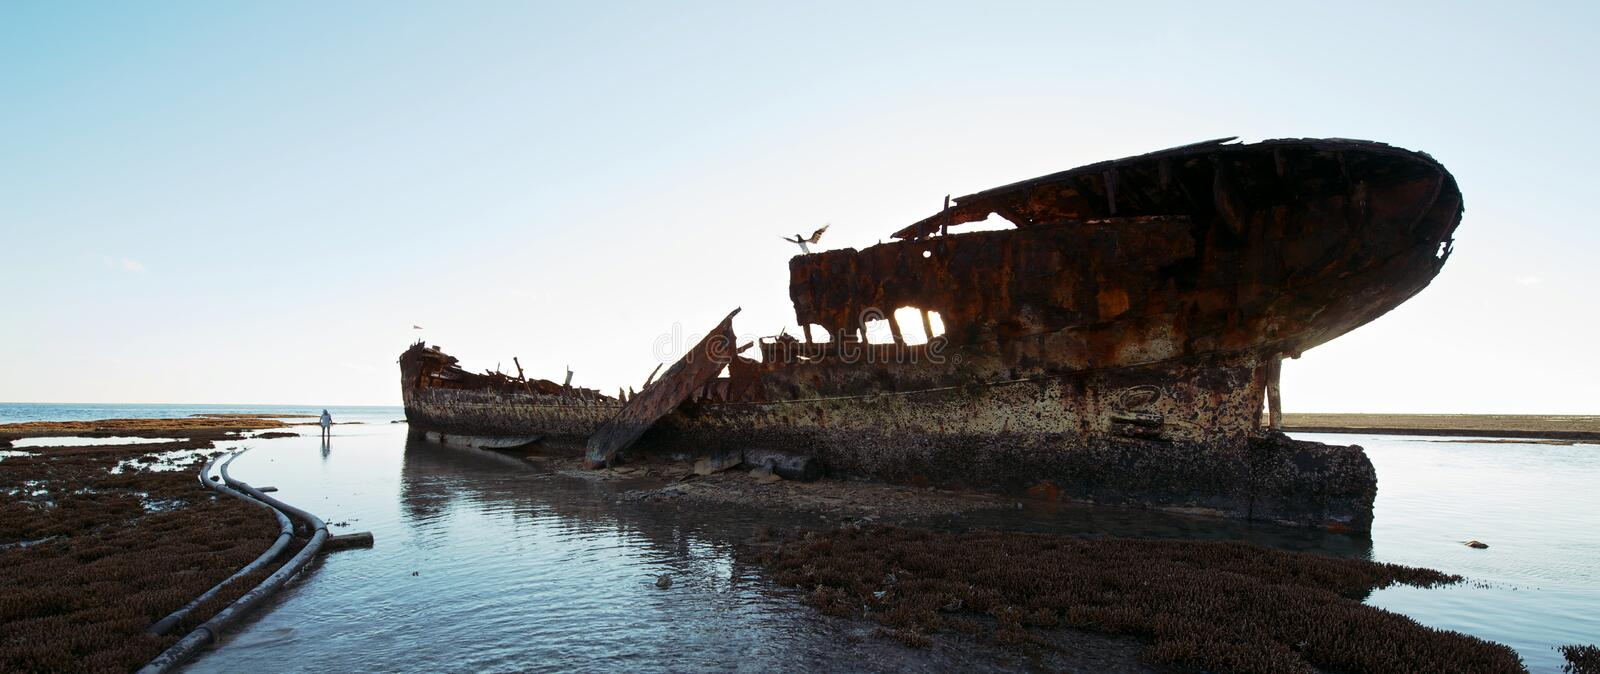 Heron Island shipwreck stock photos